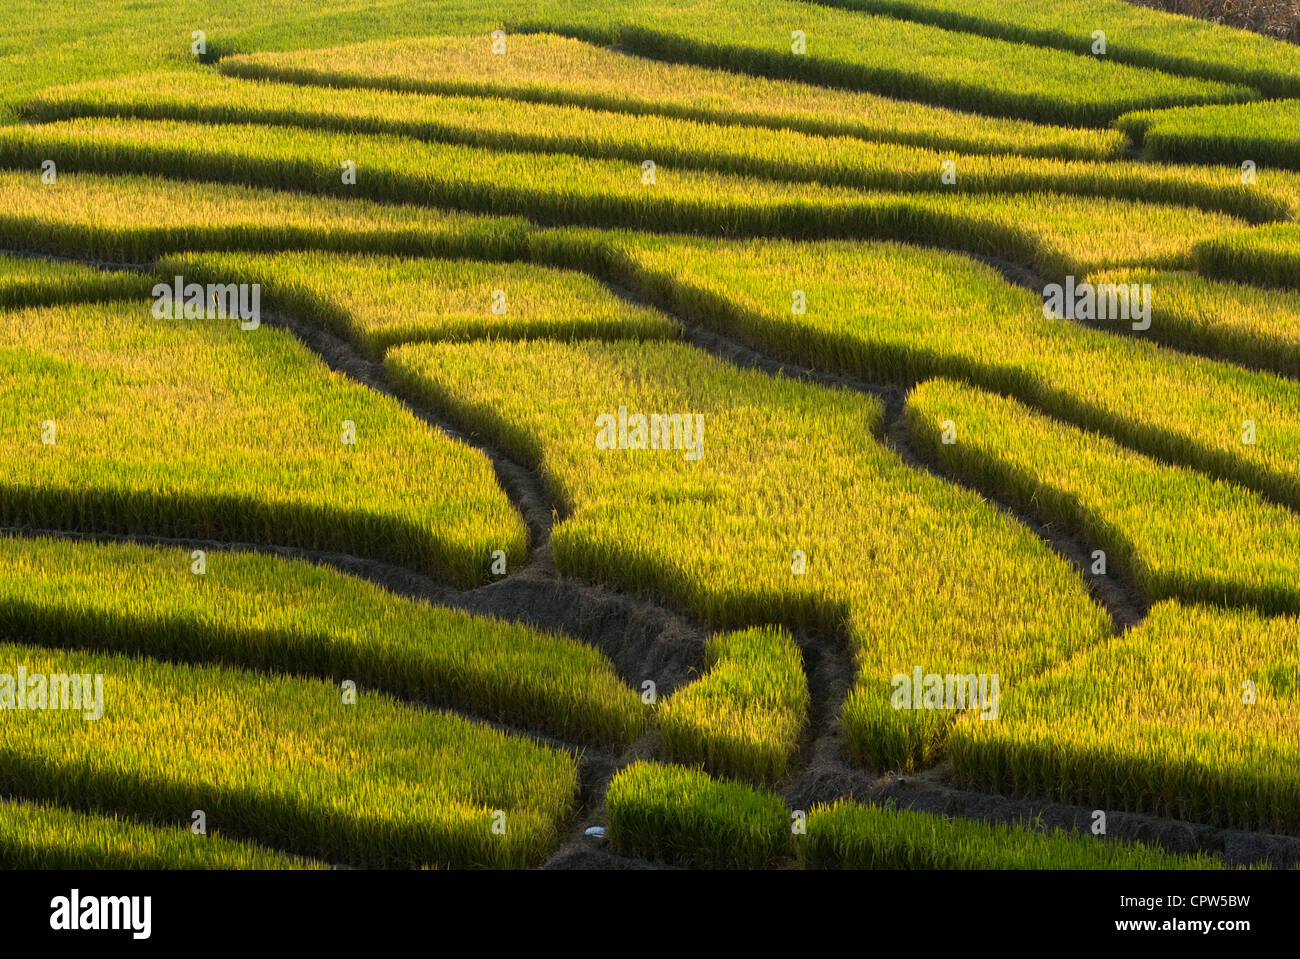 Terraced rice field - Stock Image